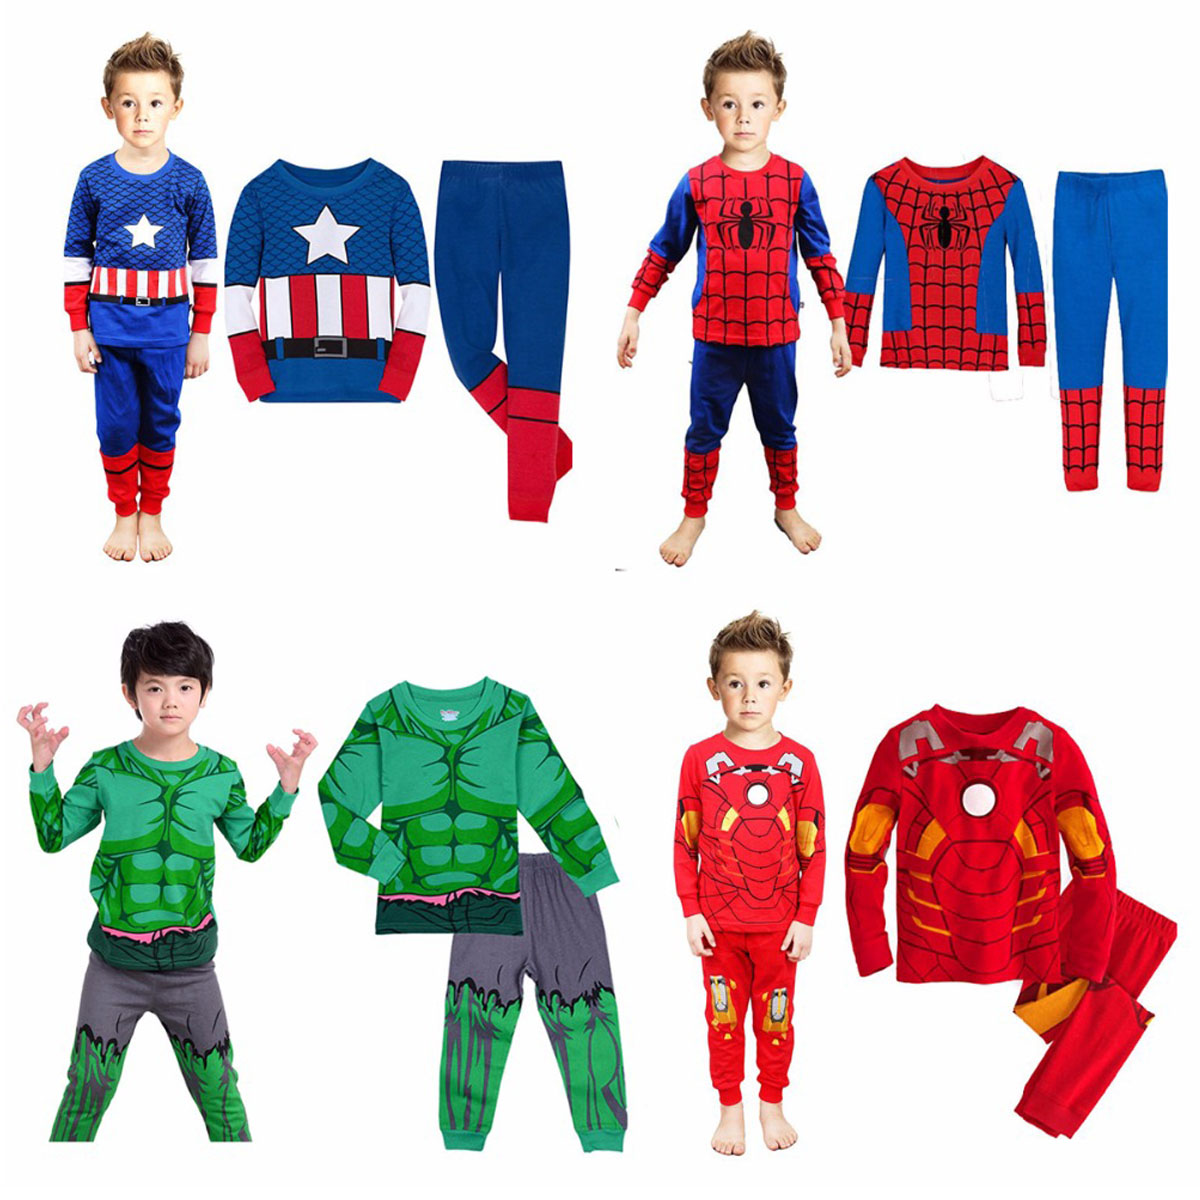 Kid Boy Superhero Hulk Captain Spiderman Pajamas Set Children Avengers Ironman Cartoon Sleepwear Child Cosplay Halloween Costume